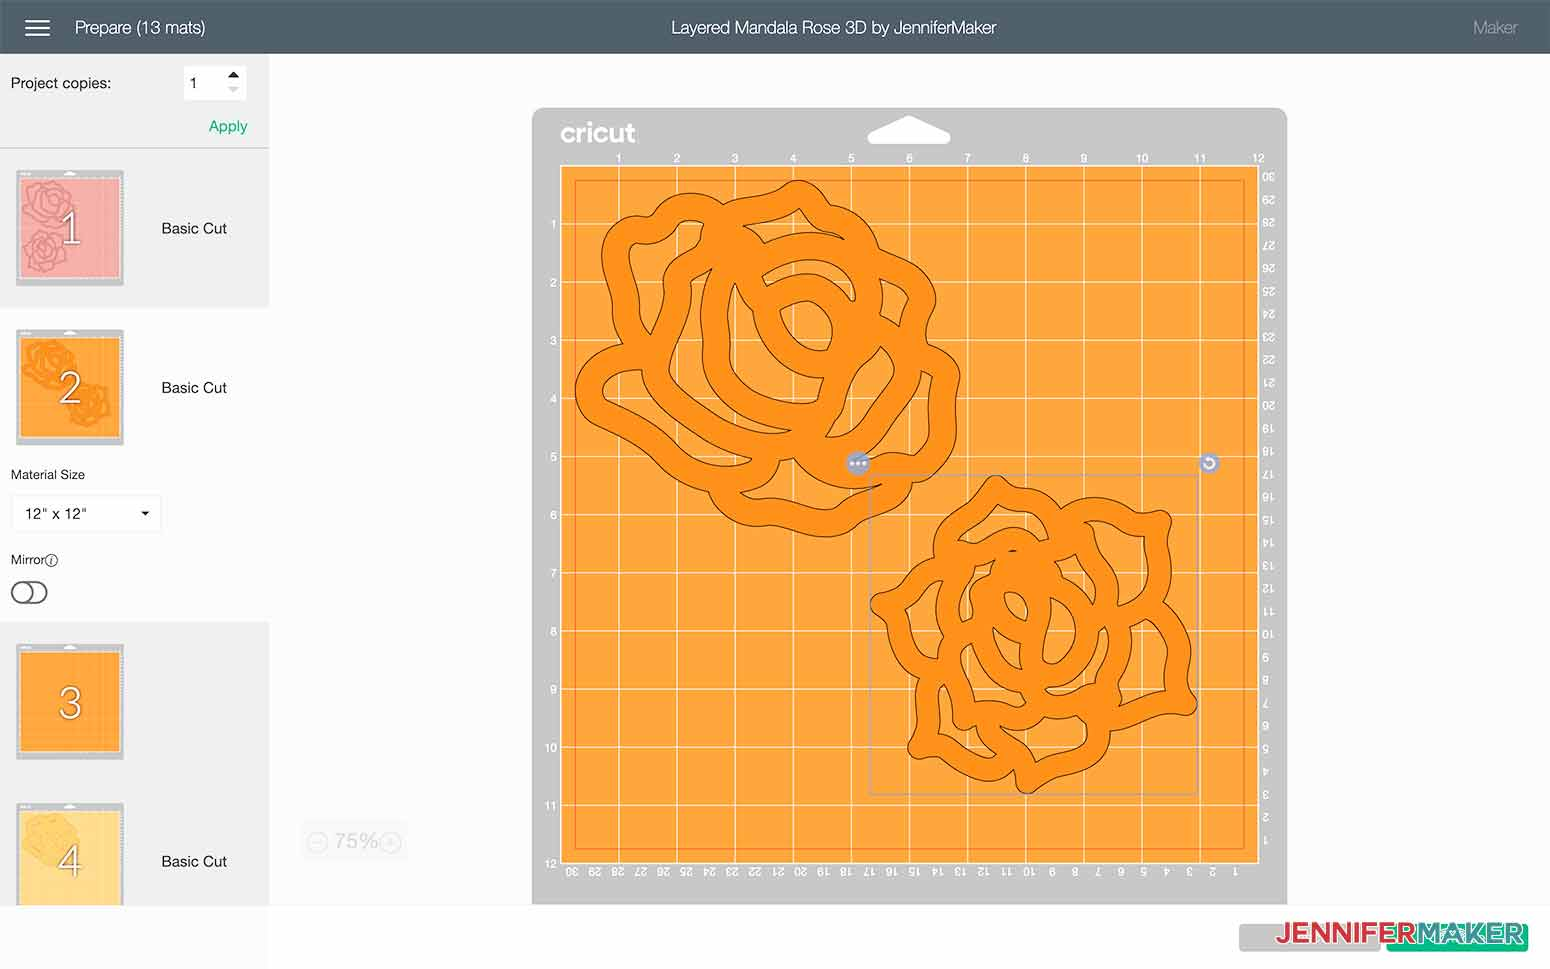 Select the image and move it so it is not overlapping other images for my Layered Mandala Rose 3D design